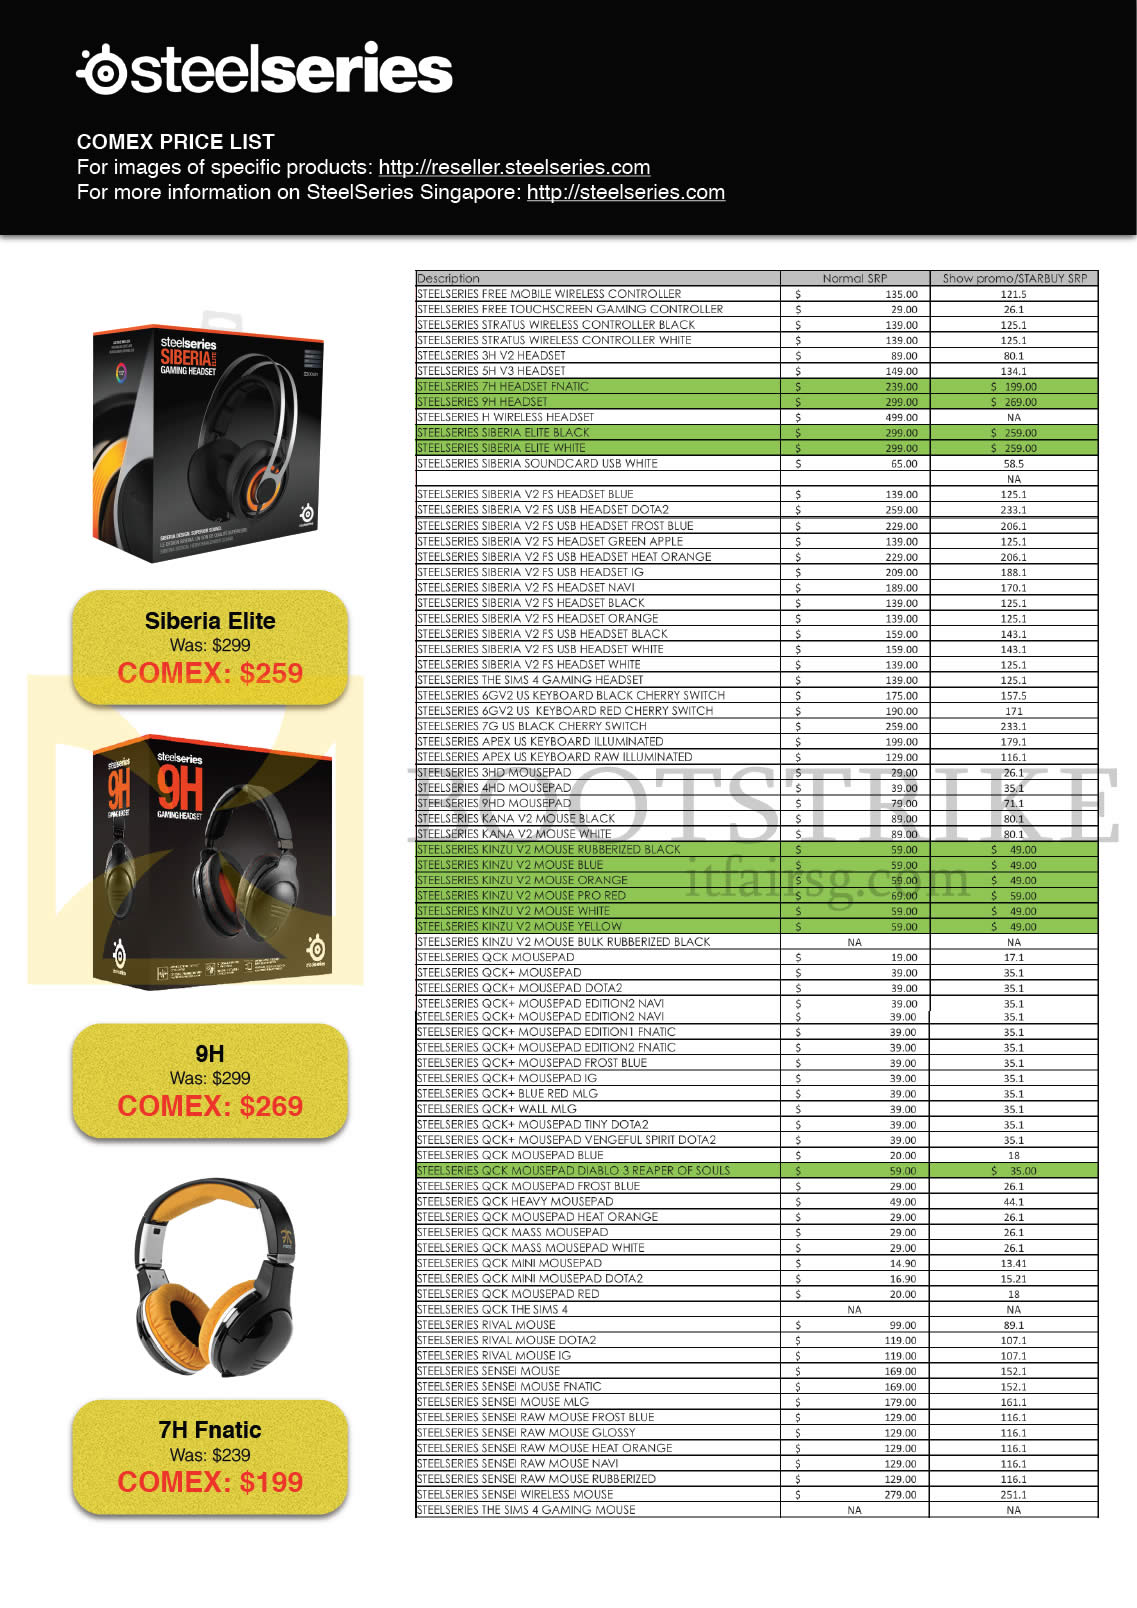 COMEX 2014 price list image brochure of Steelseries Headphones, Headset, Keyboard, Mousepad, Mouse, Controller, Siberia Elite, 9H, 7H Fnatic (Cybermind, GamePro, Newstead)